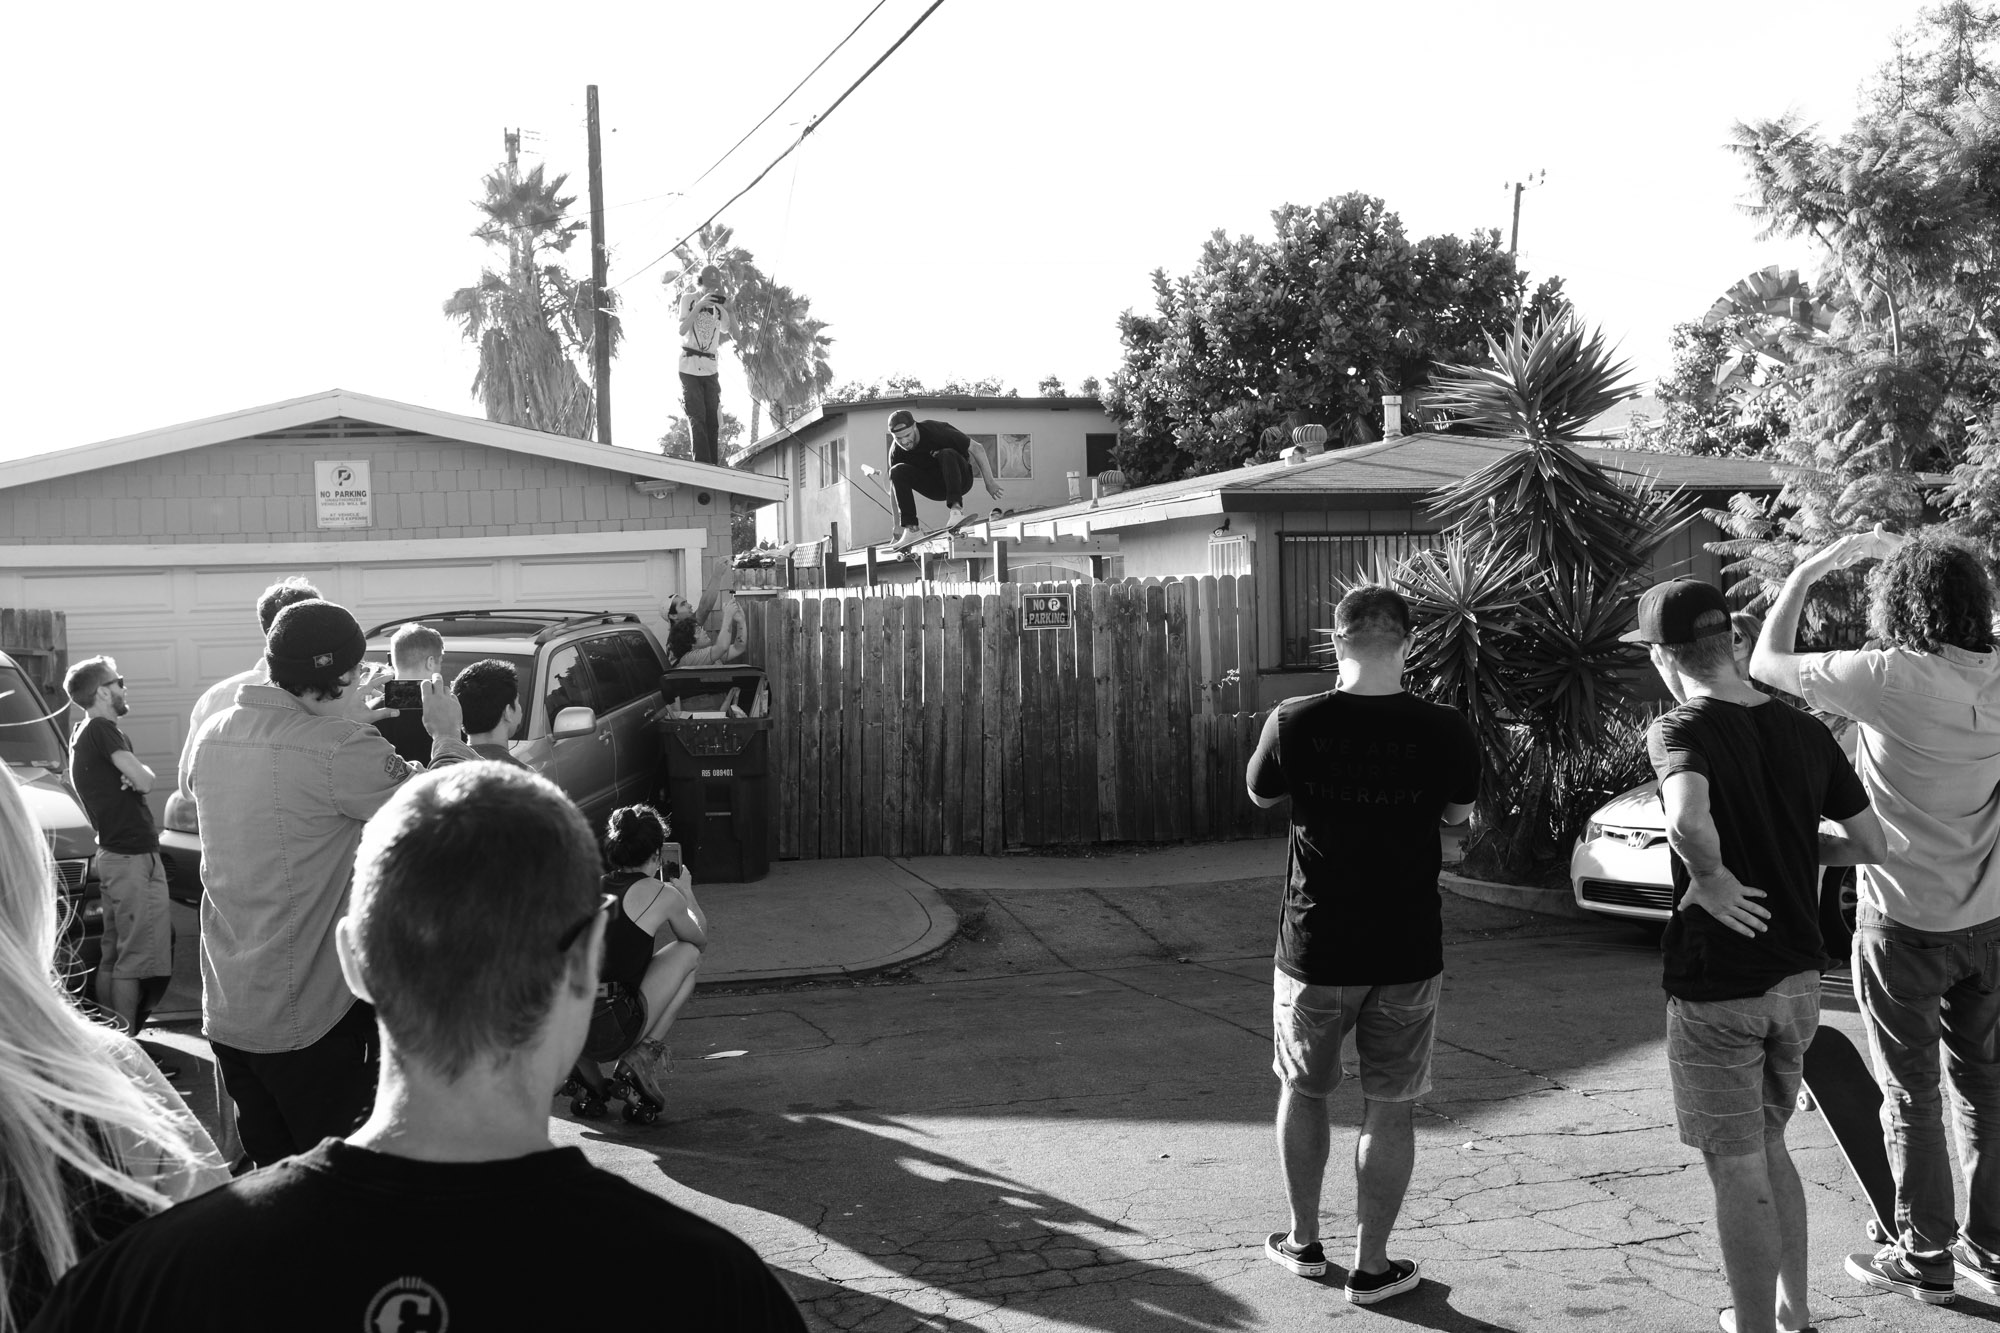 Cory ollies his back fence into the street while people watch.